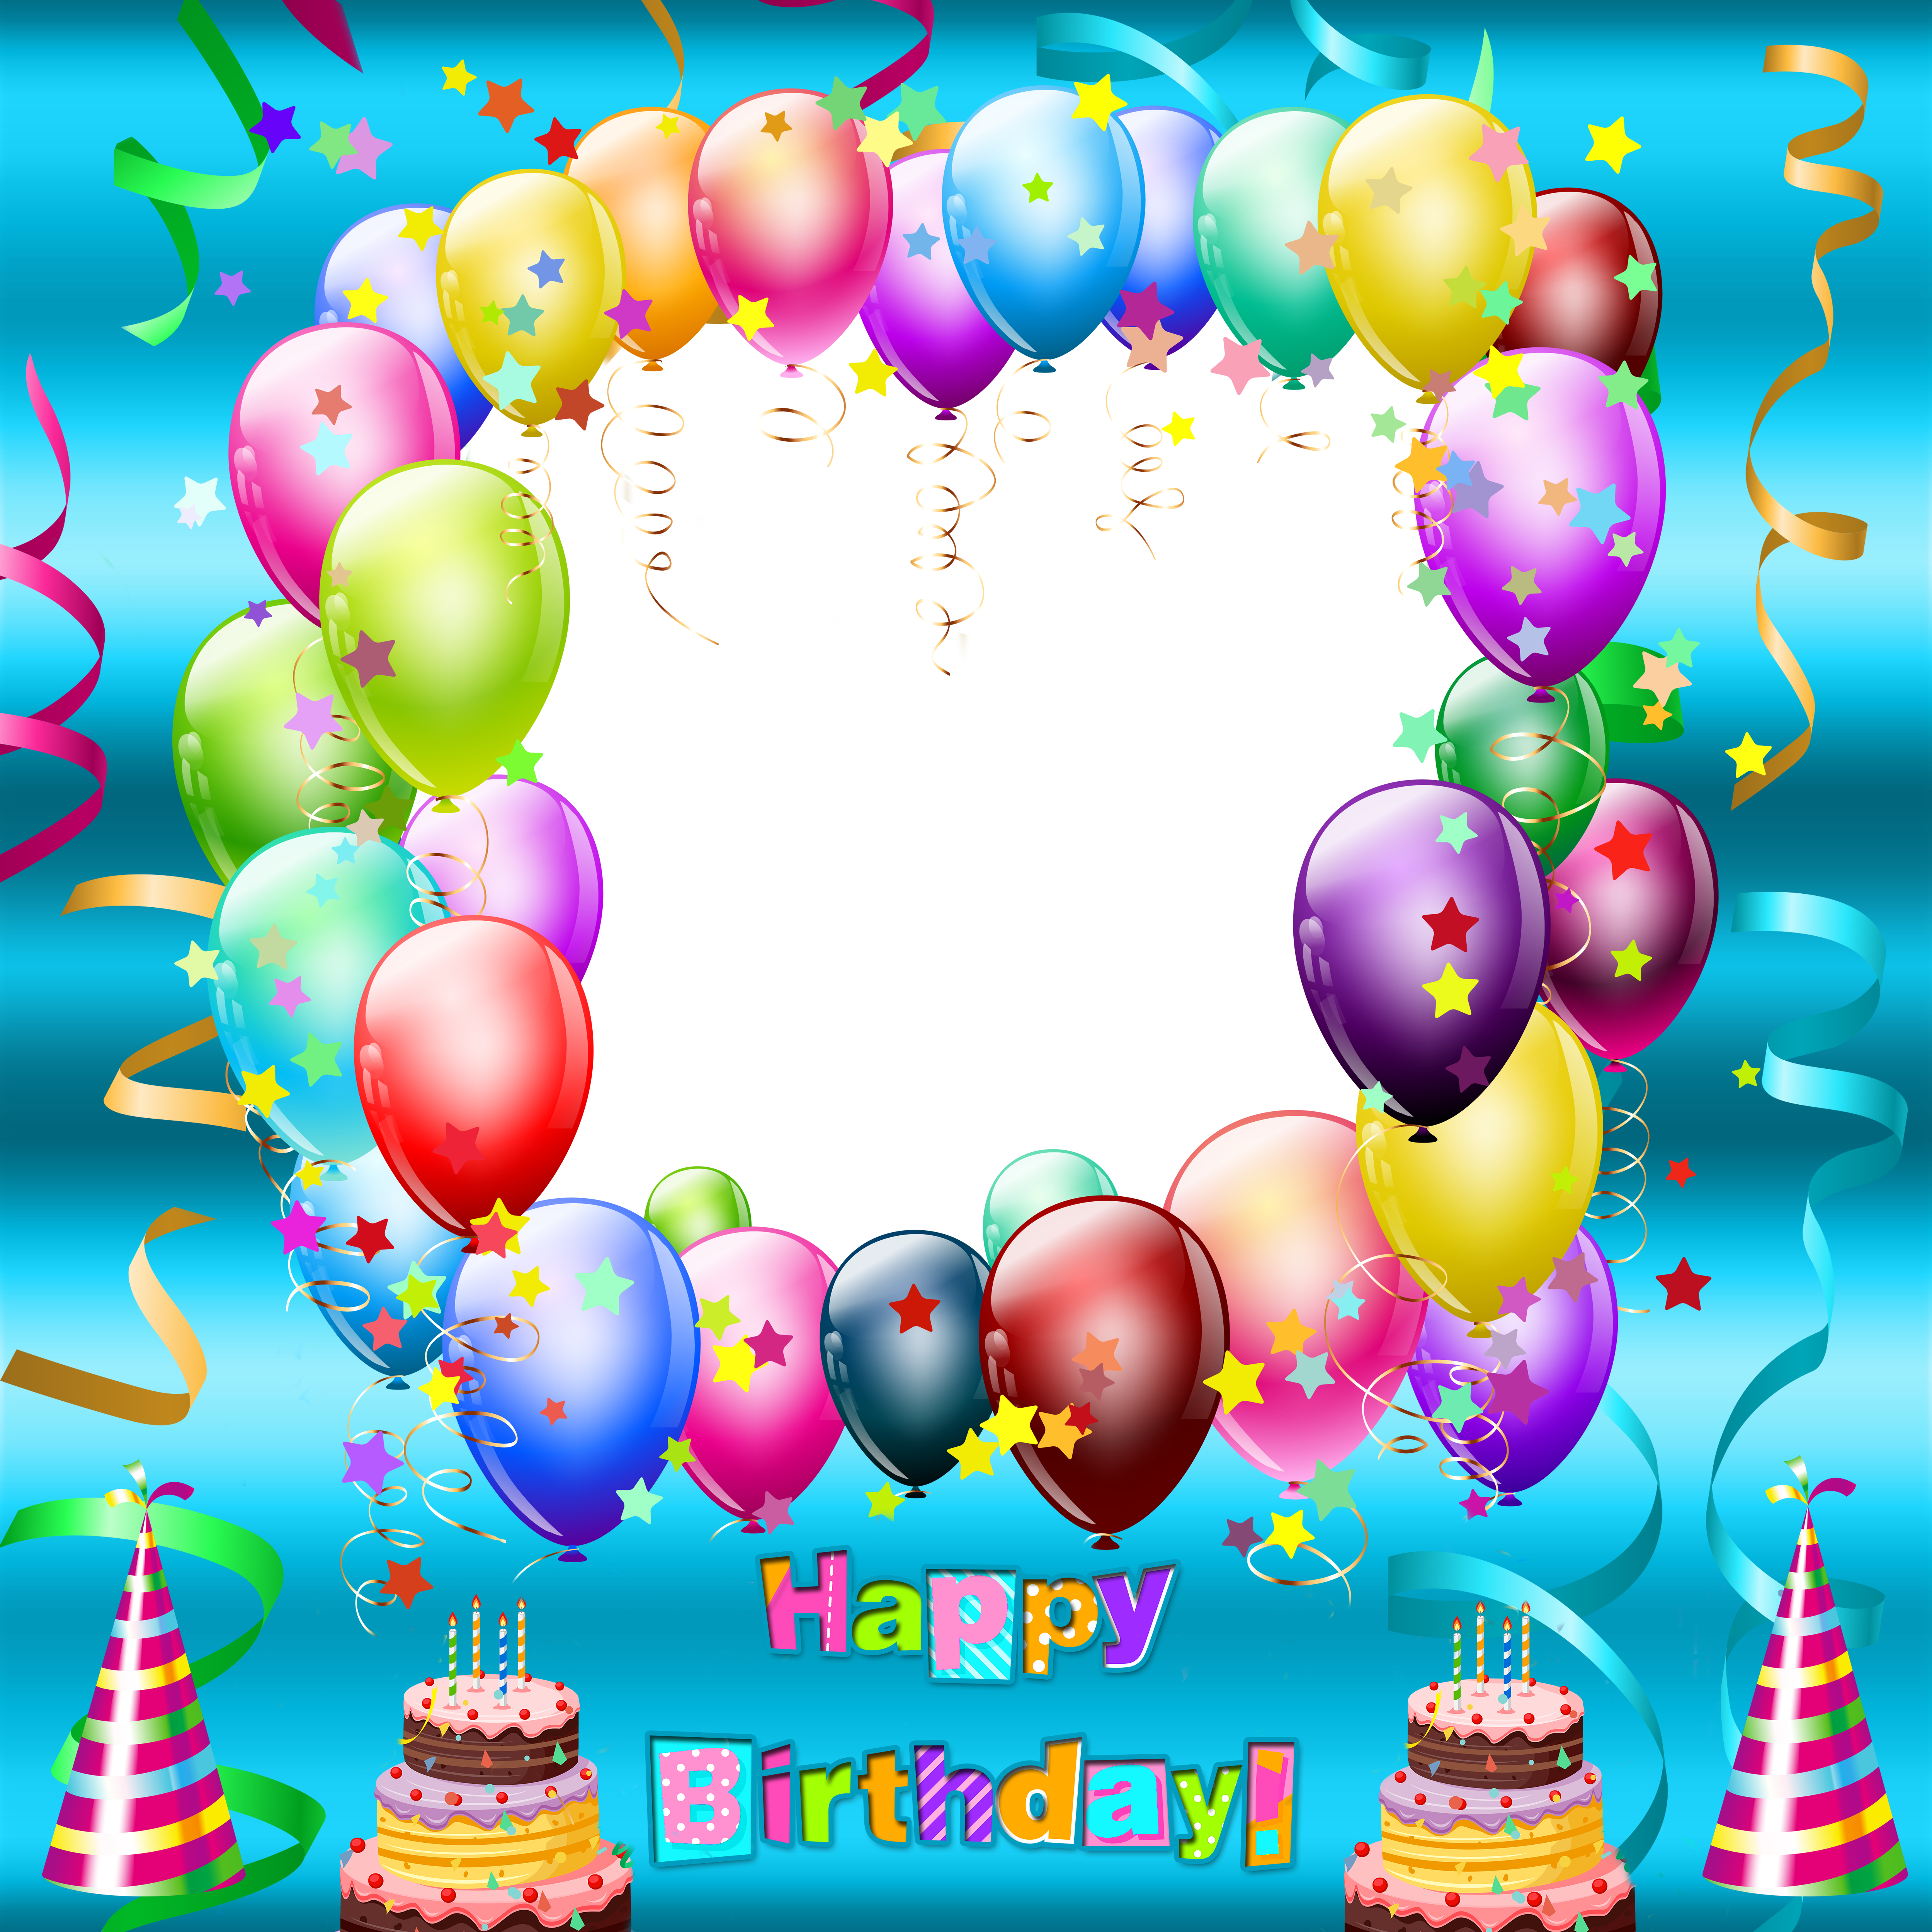 Happy birthday frames png. Transparent blue frame svetla